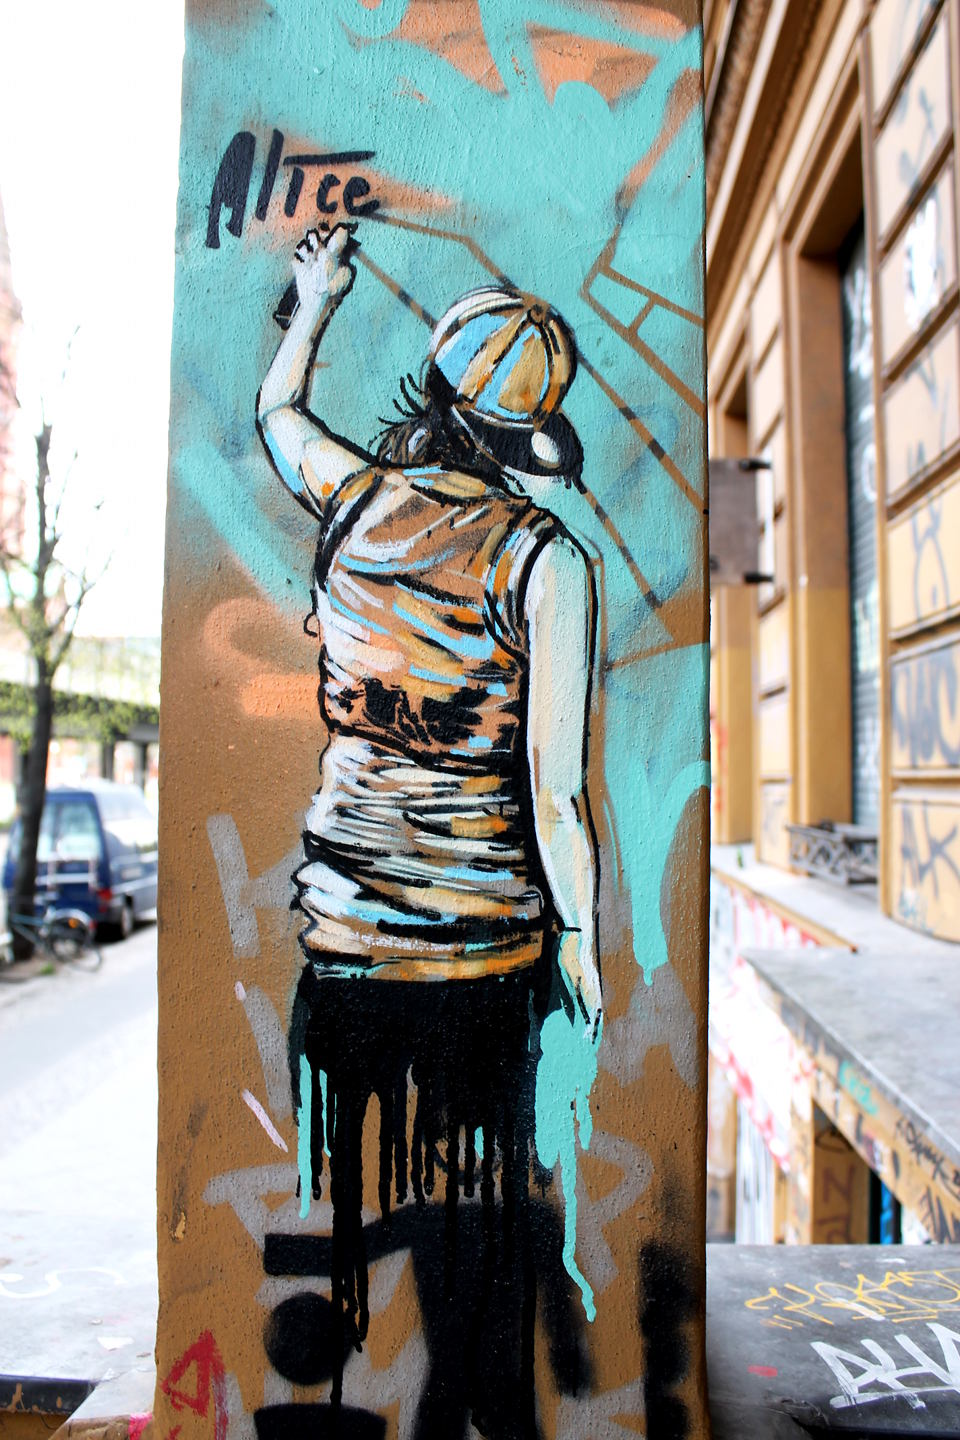 "Street Art by AliCé aka. Alice Pasquini ""Grafitti Writer"" at Skalitzerstr in Berlin"